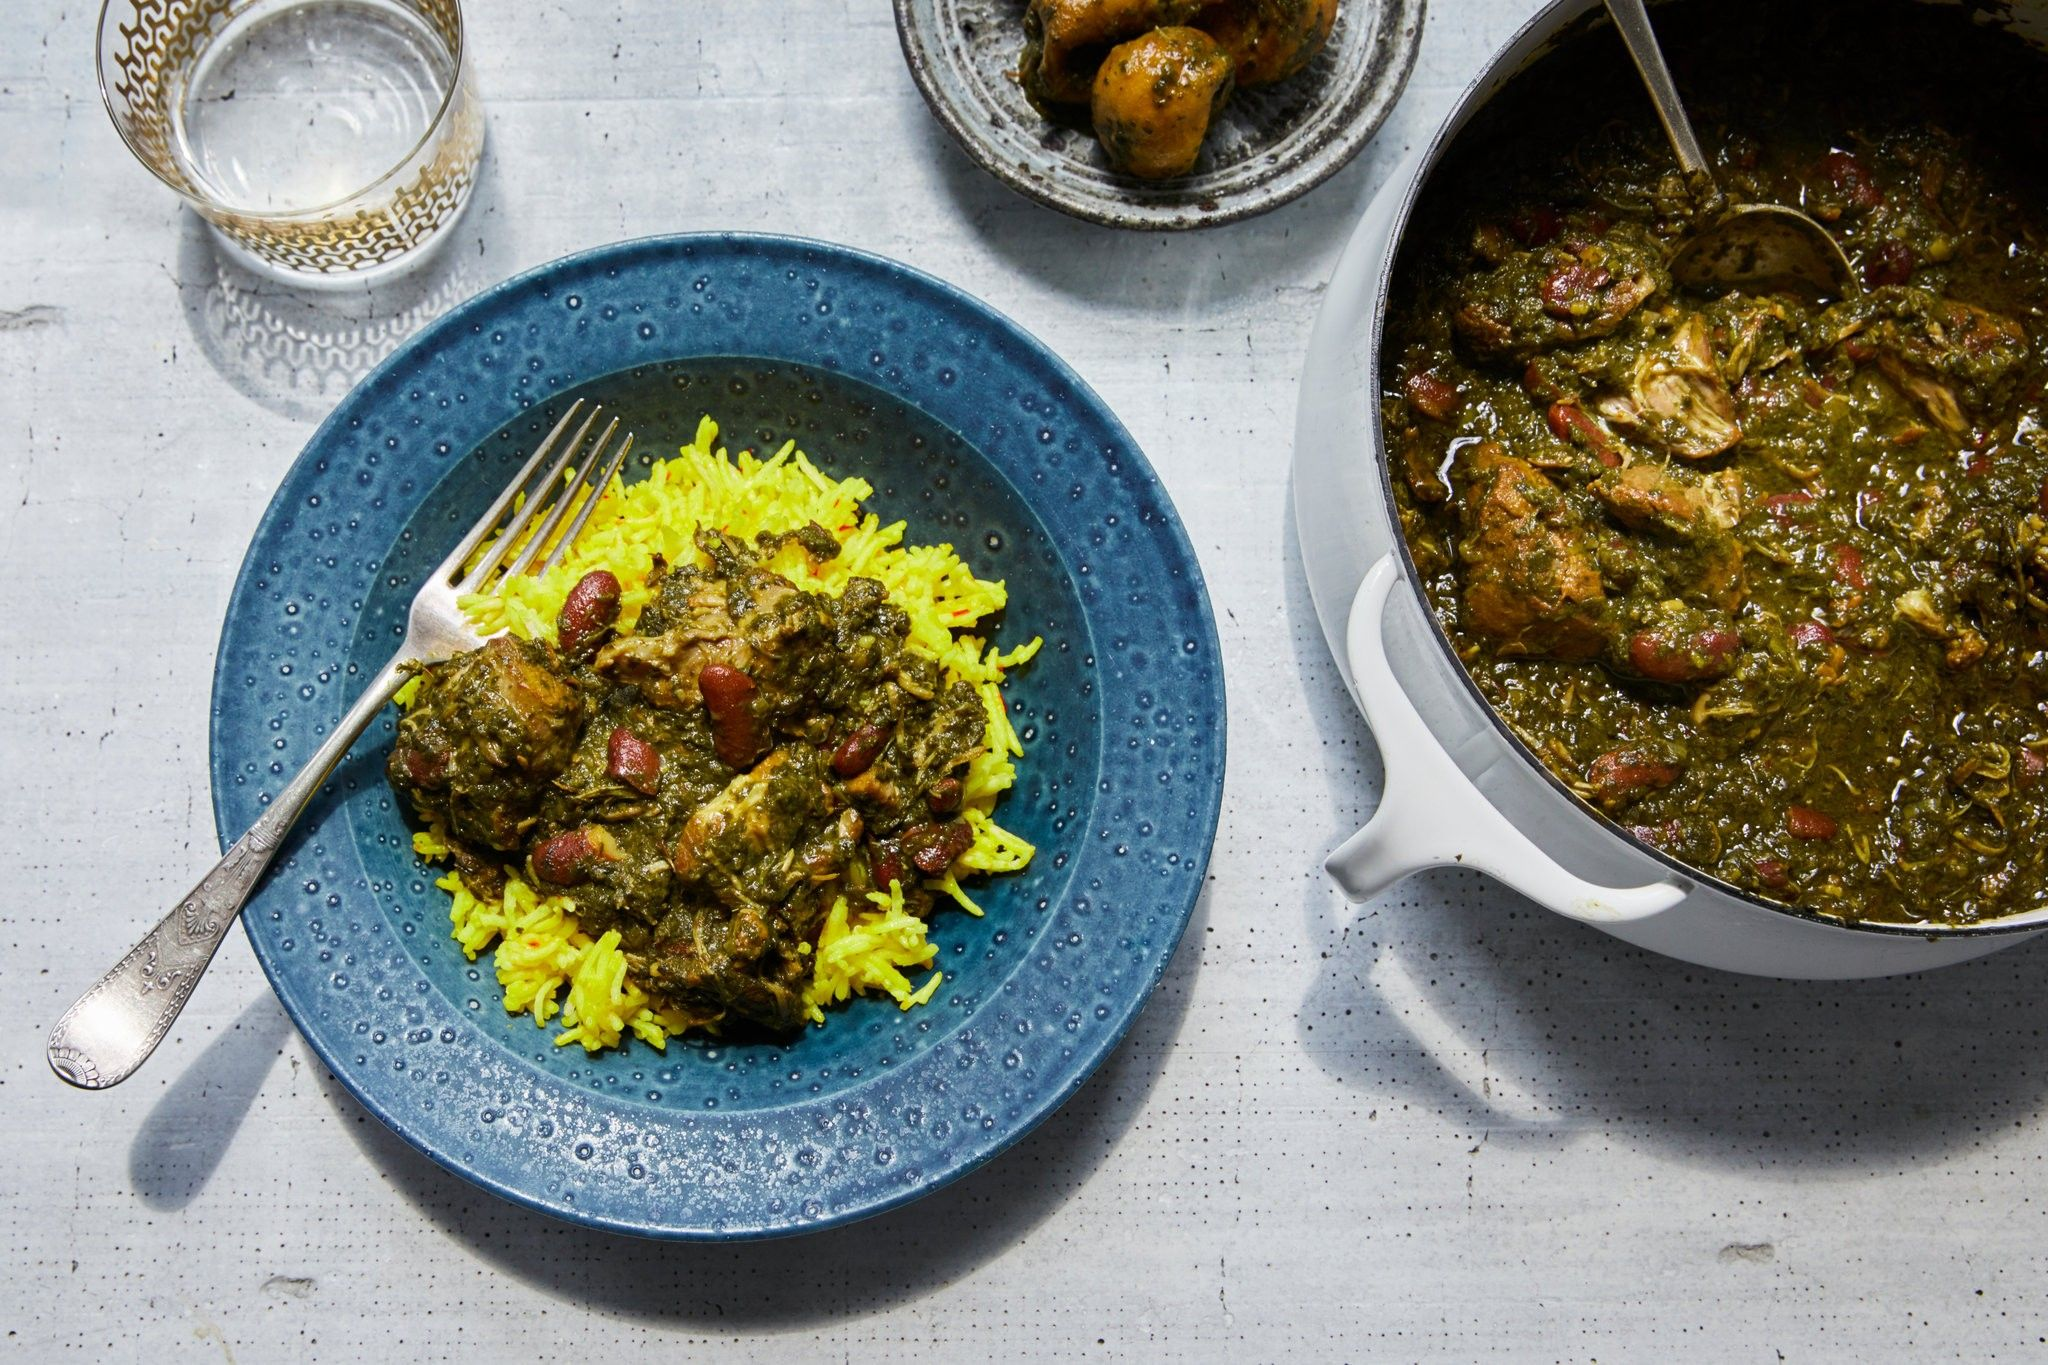 Samin Nosrat S 10 Essential Persian Recipes The New York Times